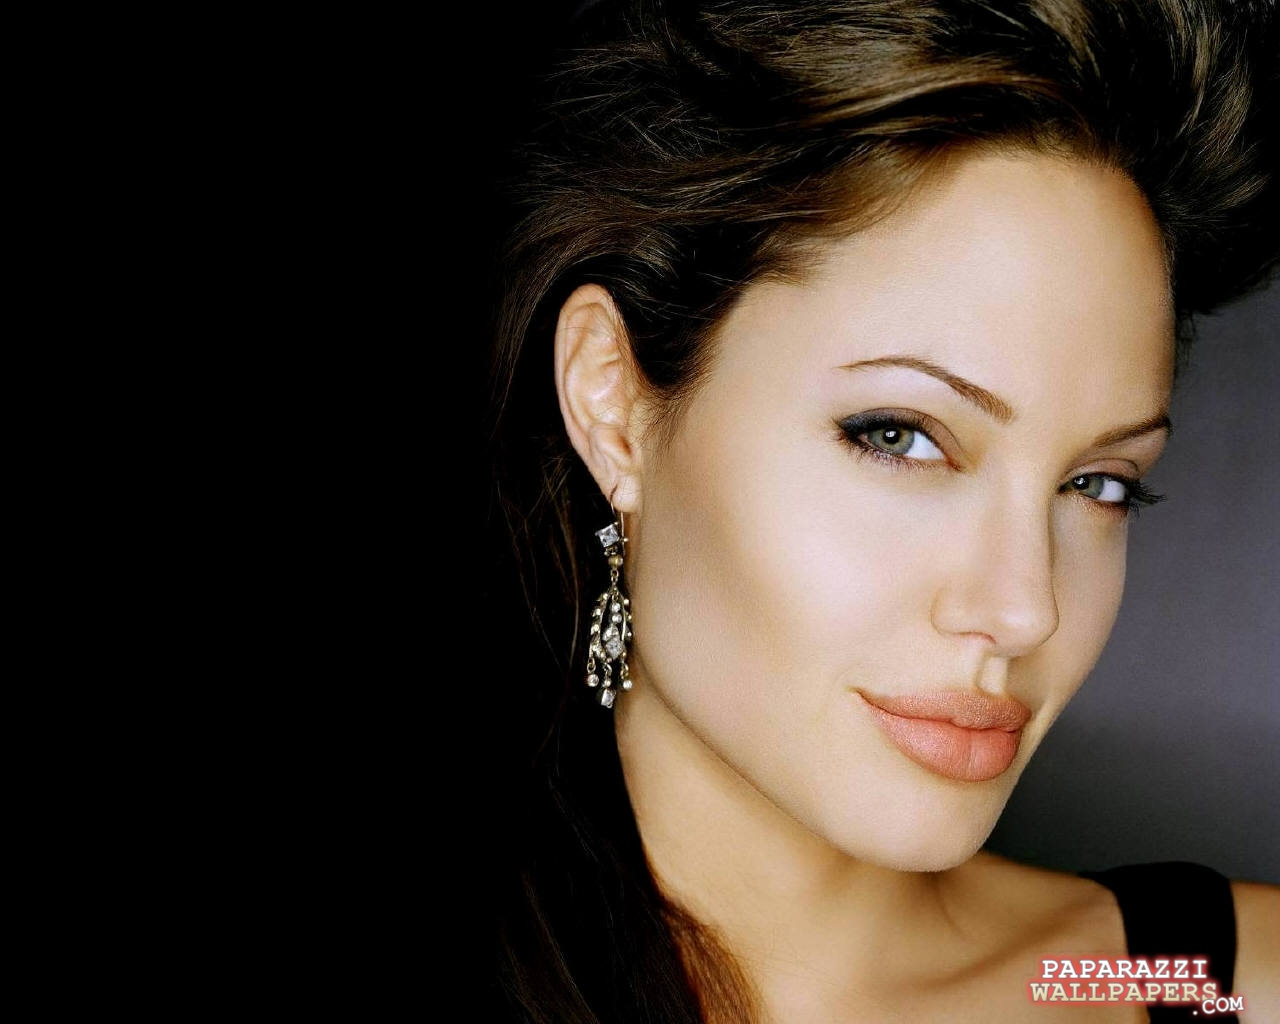 angelina jolie wallpapers 075